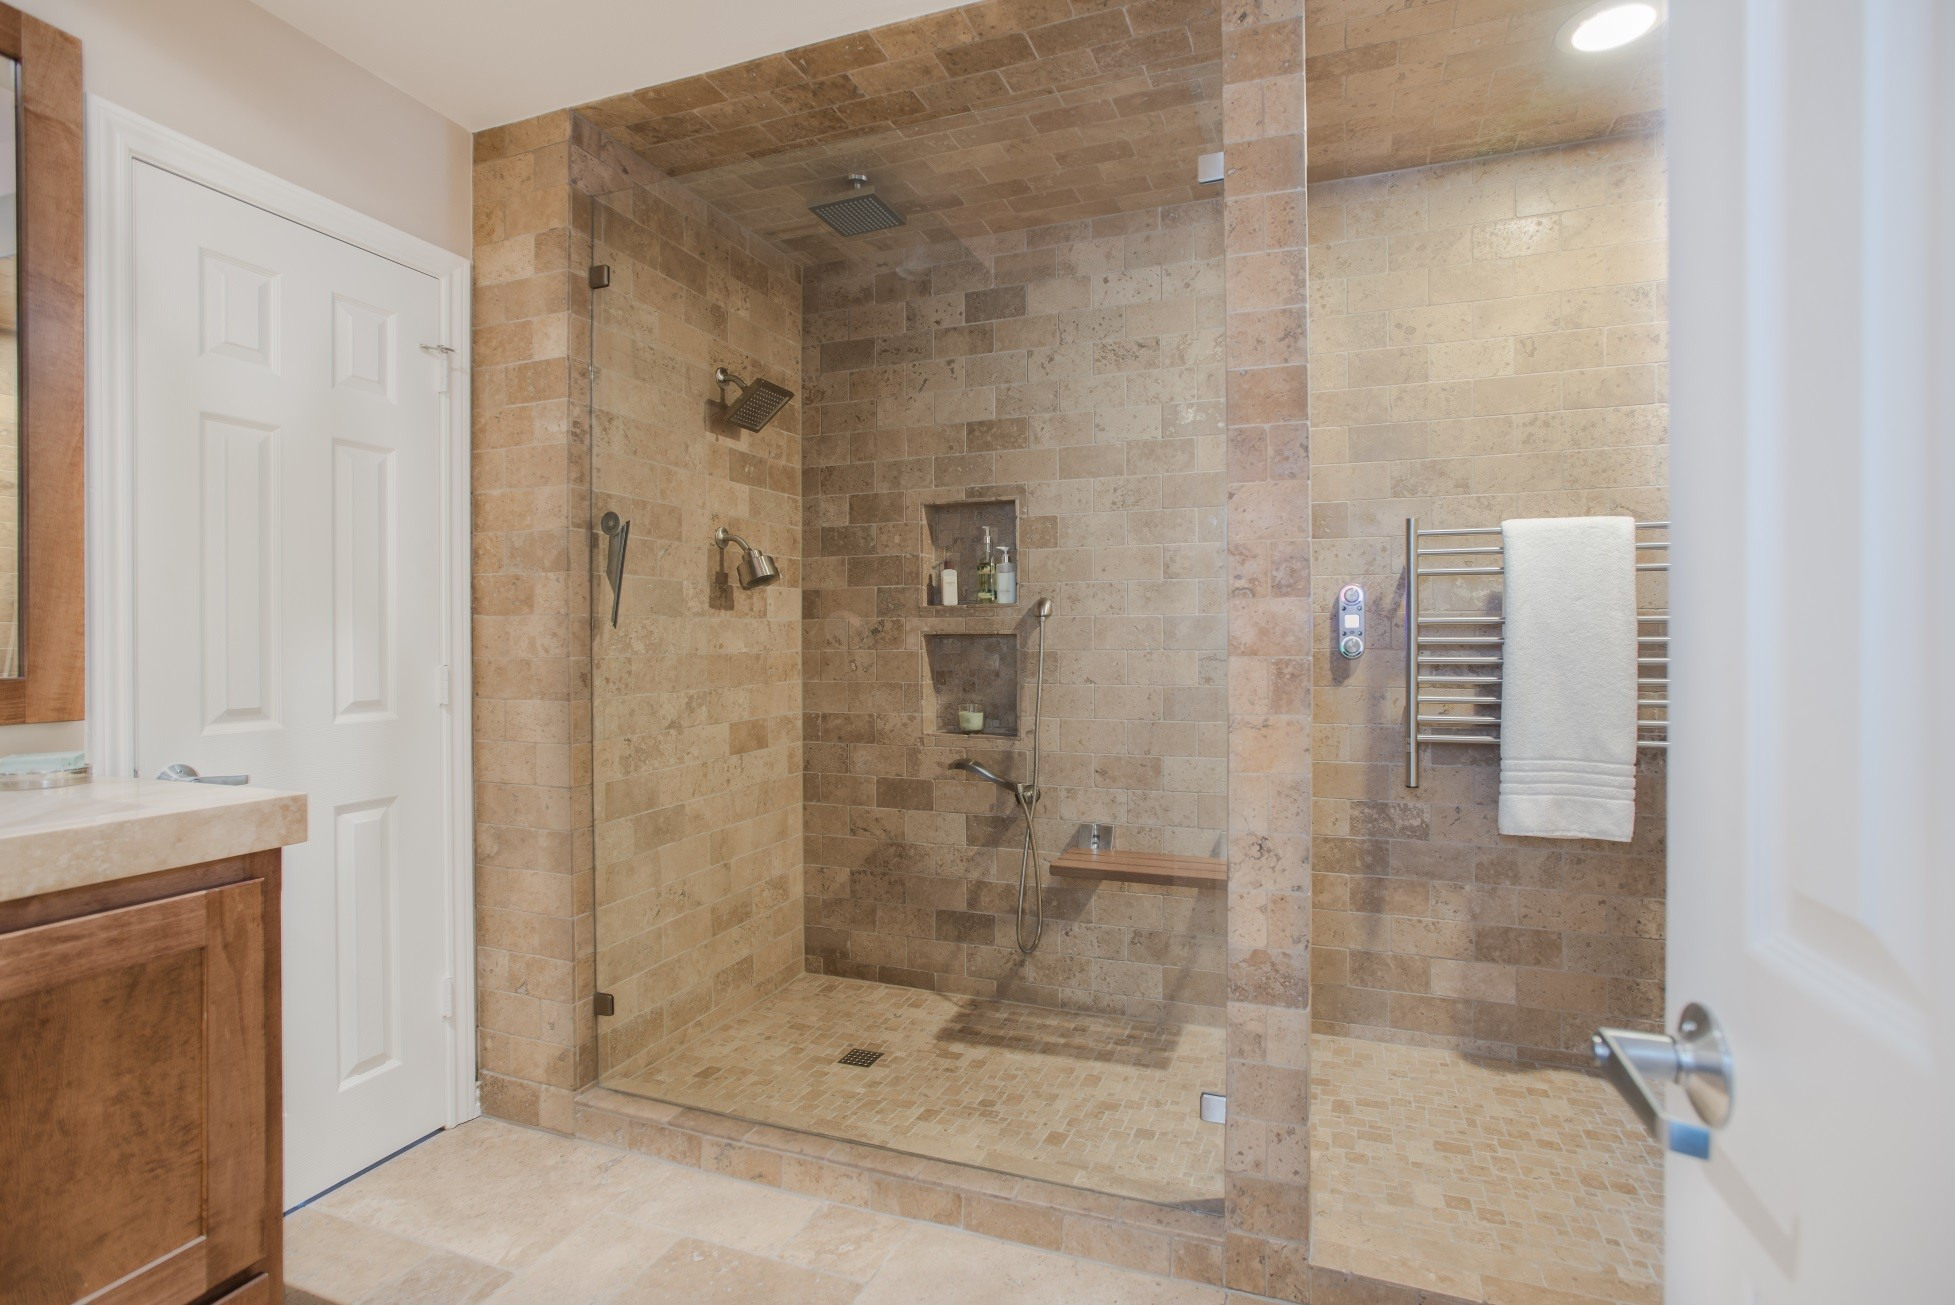 The End Result Is A Spacious Shower With Shampoo Inserts, Multiple Shower  Heads With A Water Pressure An Temperature Control, A Teak Seat And Towel  Warmer ...